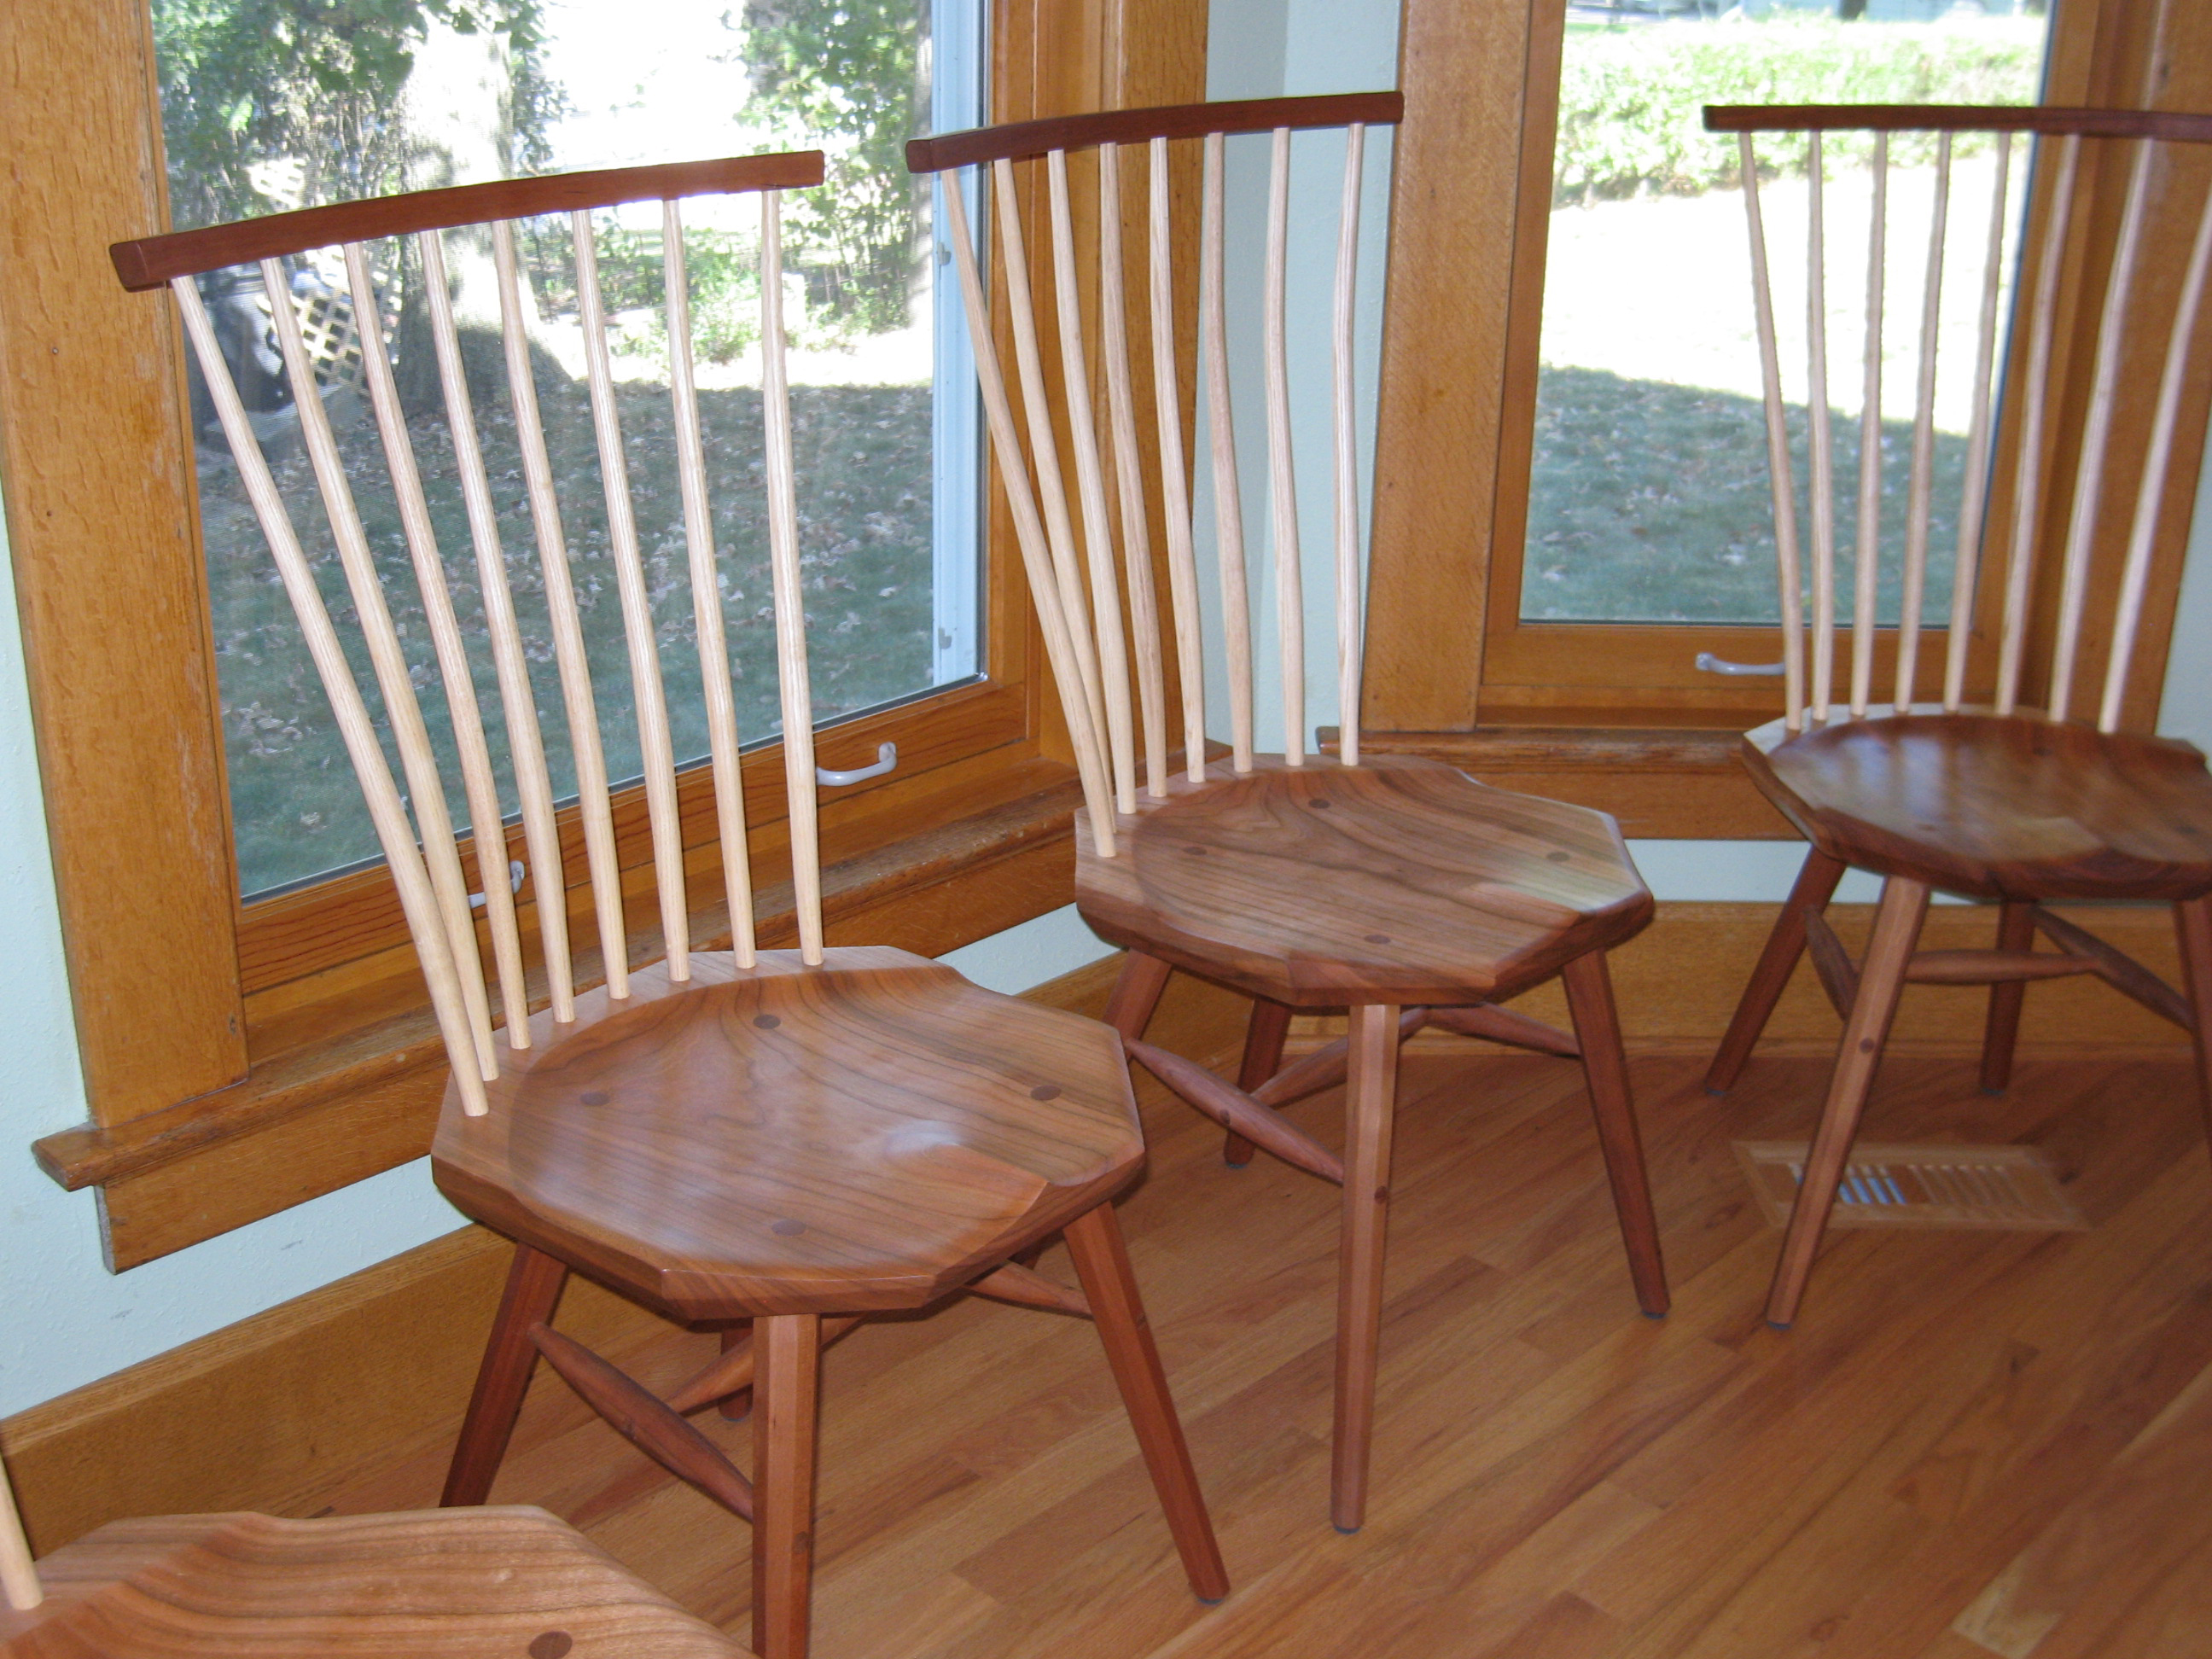 custom woodworking des moines ia